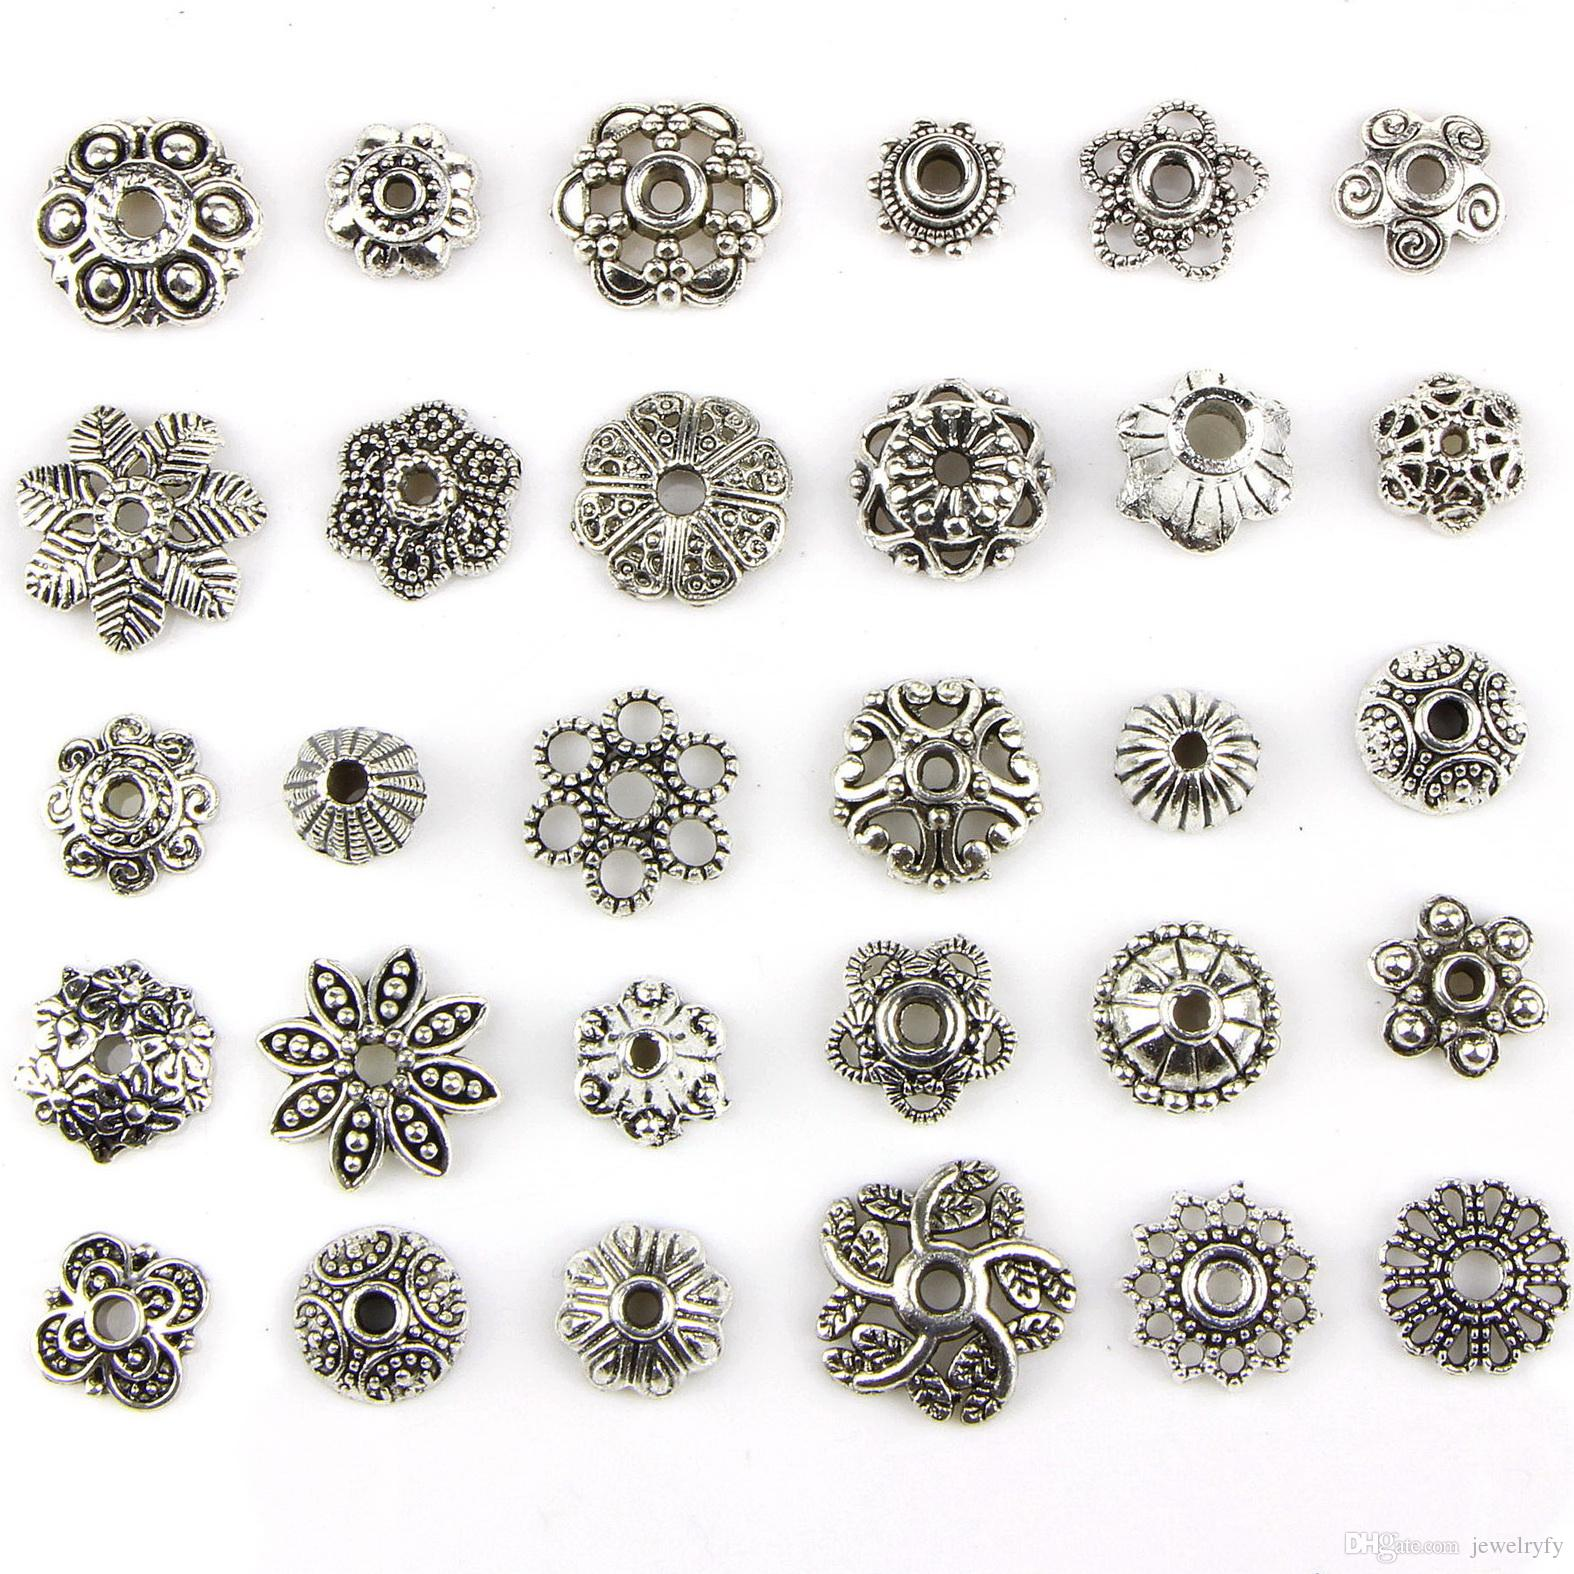 Assorted 30 Designs Antique Silver Flower Petal Decorative Pattern Pendant Charms Perforated Metal Spacer Beads DIY Jewelry Making 30pcs/set